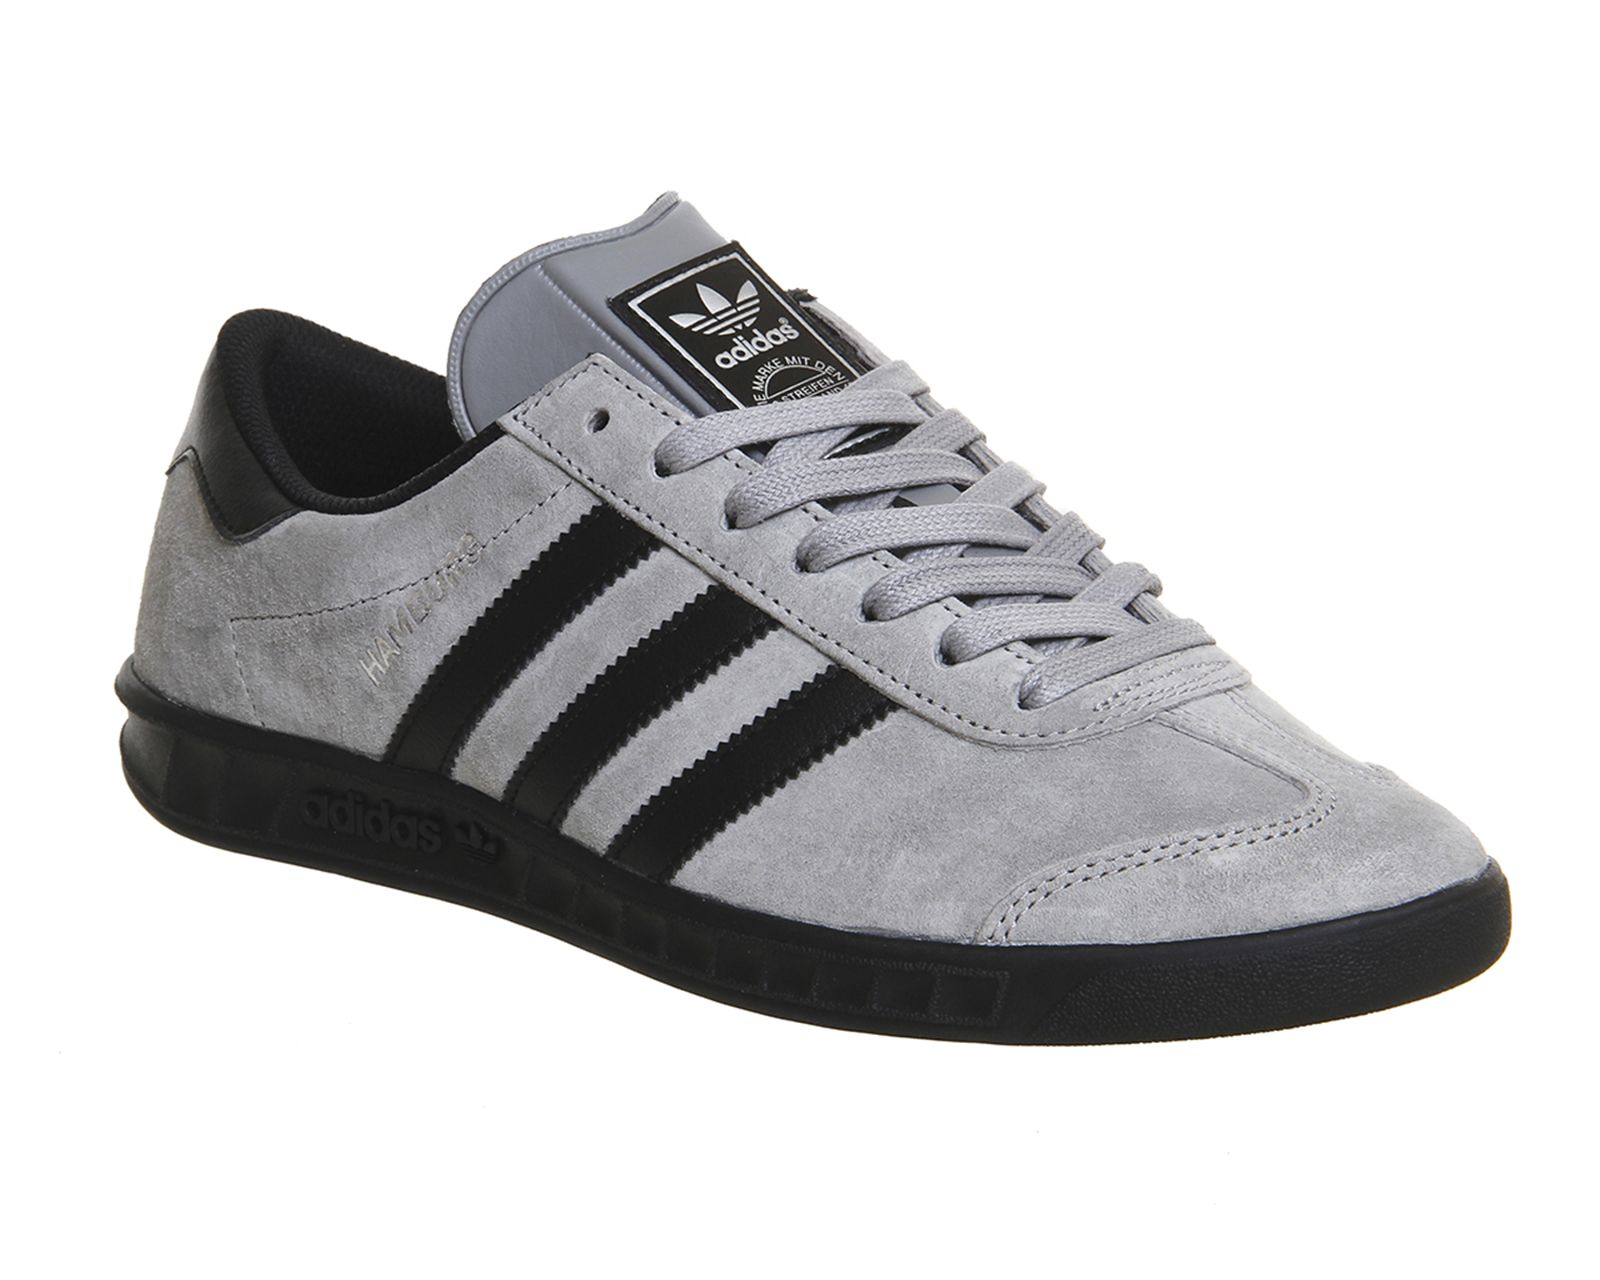 6ed73d7d2da Grey and Black Adidas Hamburg reduced to £40